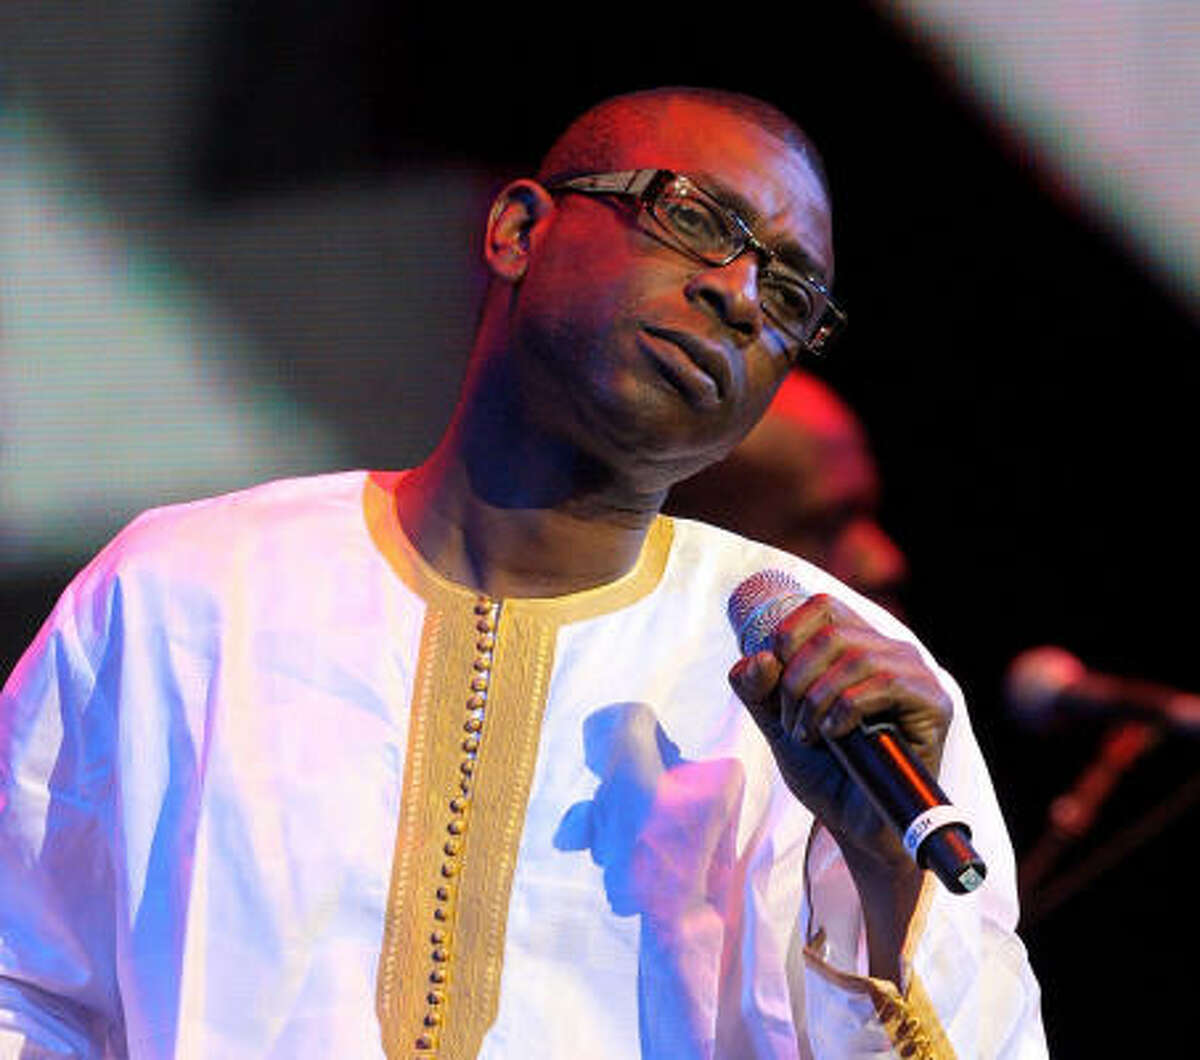 Youssou N'Dour performs onstage at the Africa Rising Festival, held at the Royal Albert Hall in England in 2008.